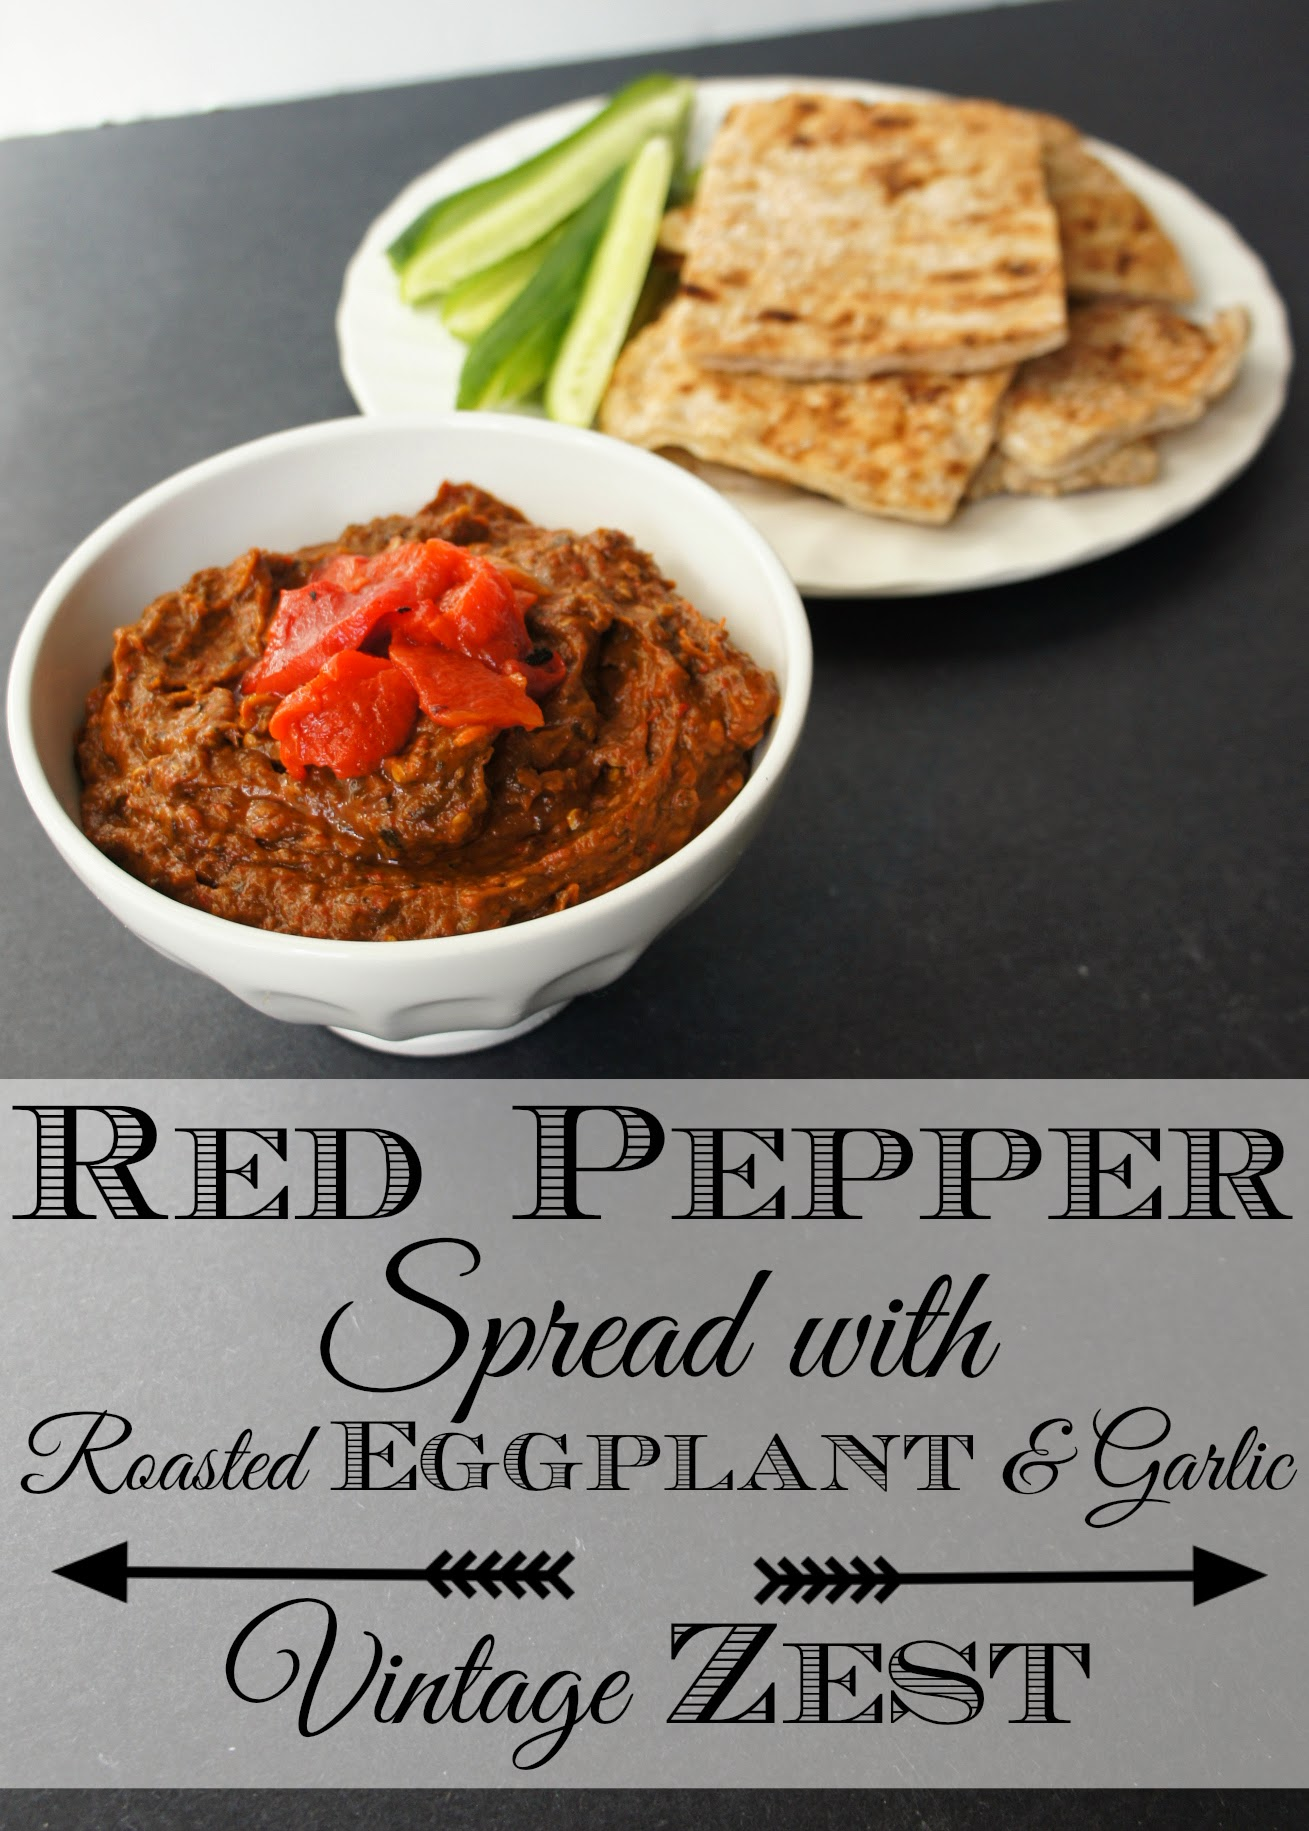 Red Pepper Spread with Roasted Eggplant and Garlic on Vintage Zest